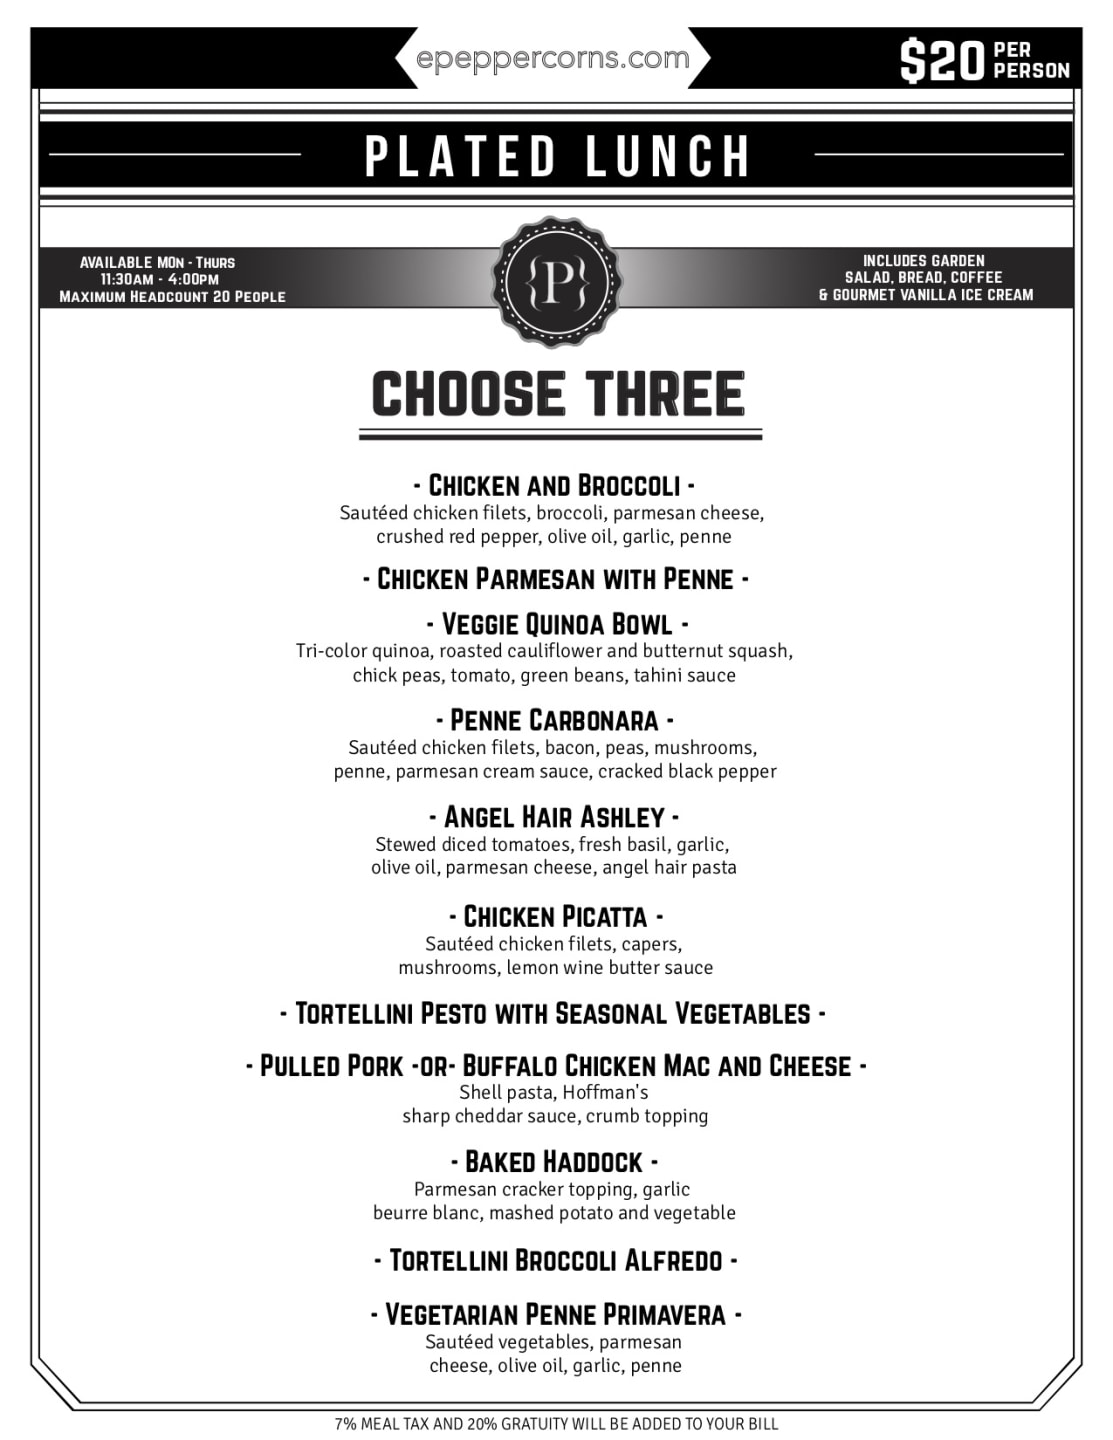 downloadable menu - plated lunch